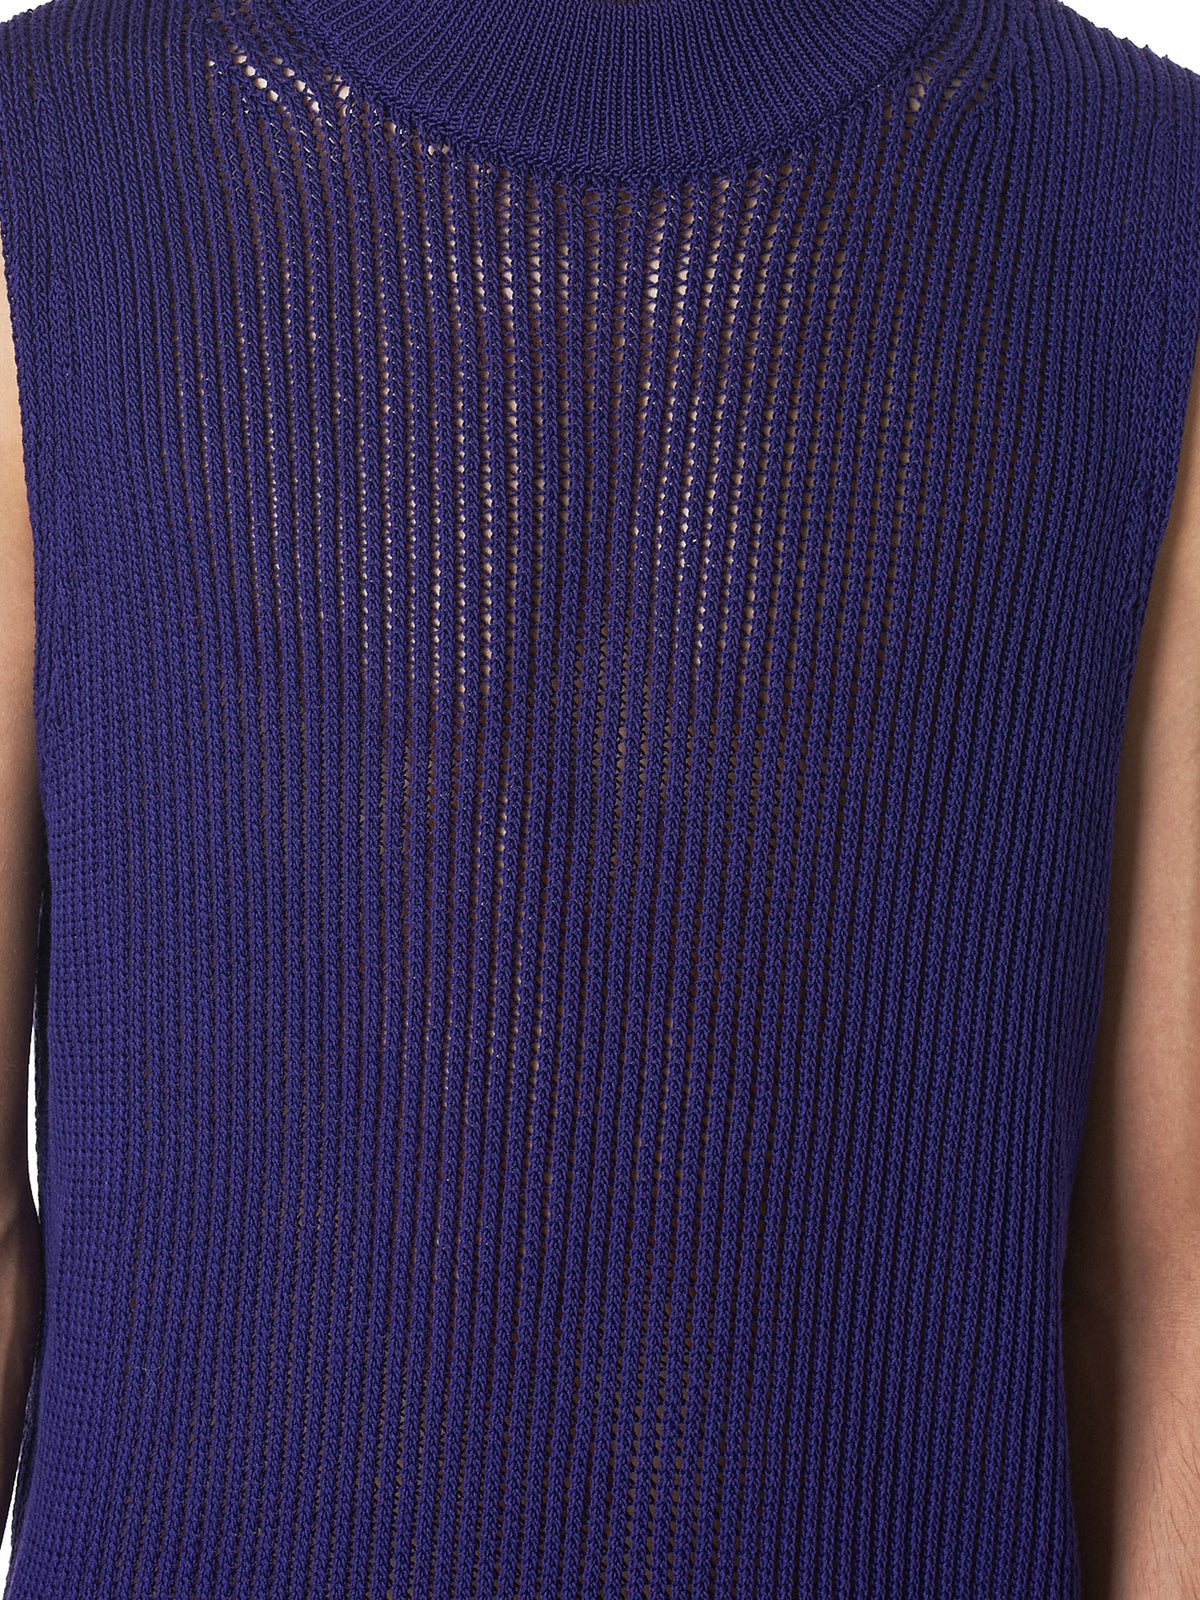 Namacheko Purple Knit Vest - Hlorenzo detail 2